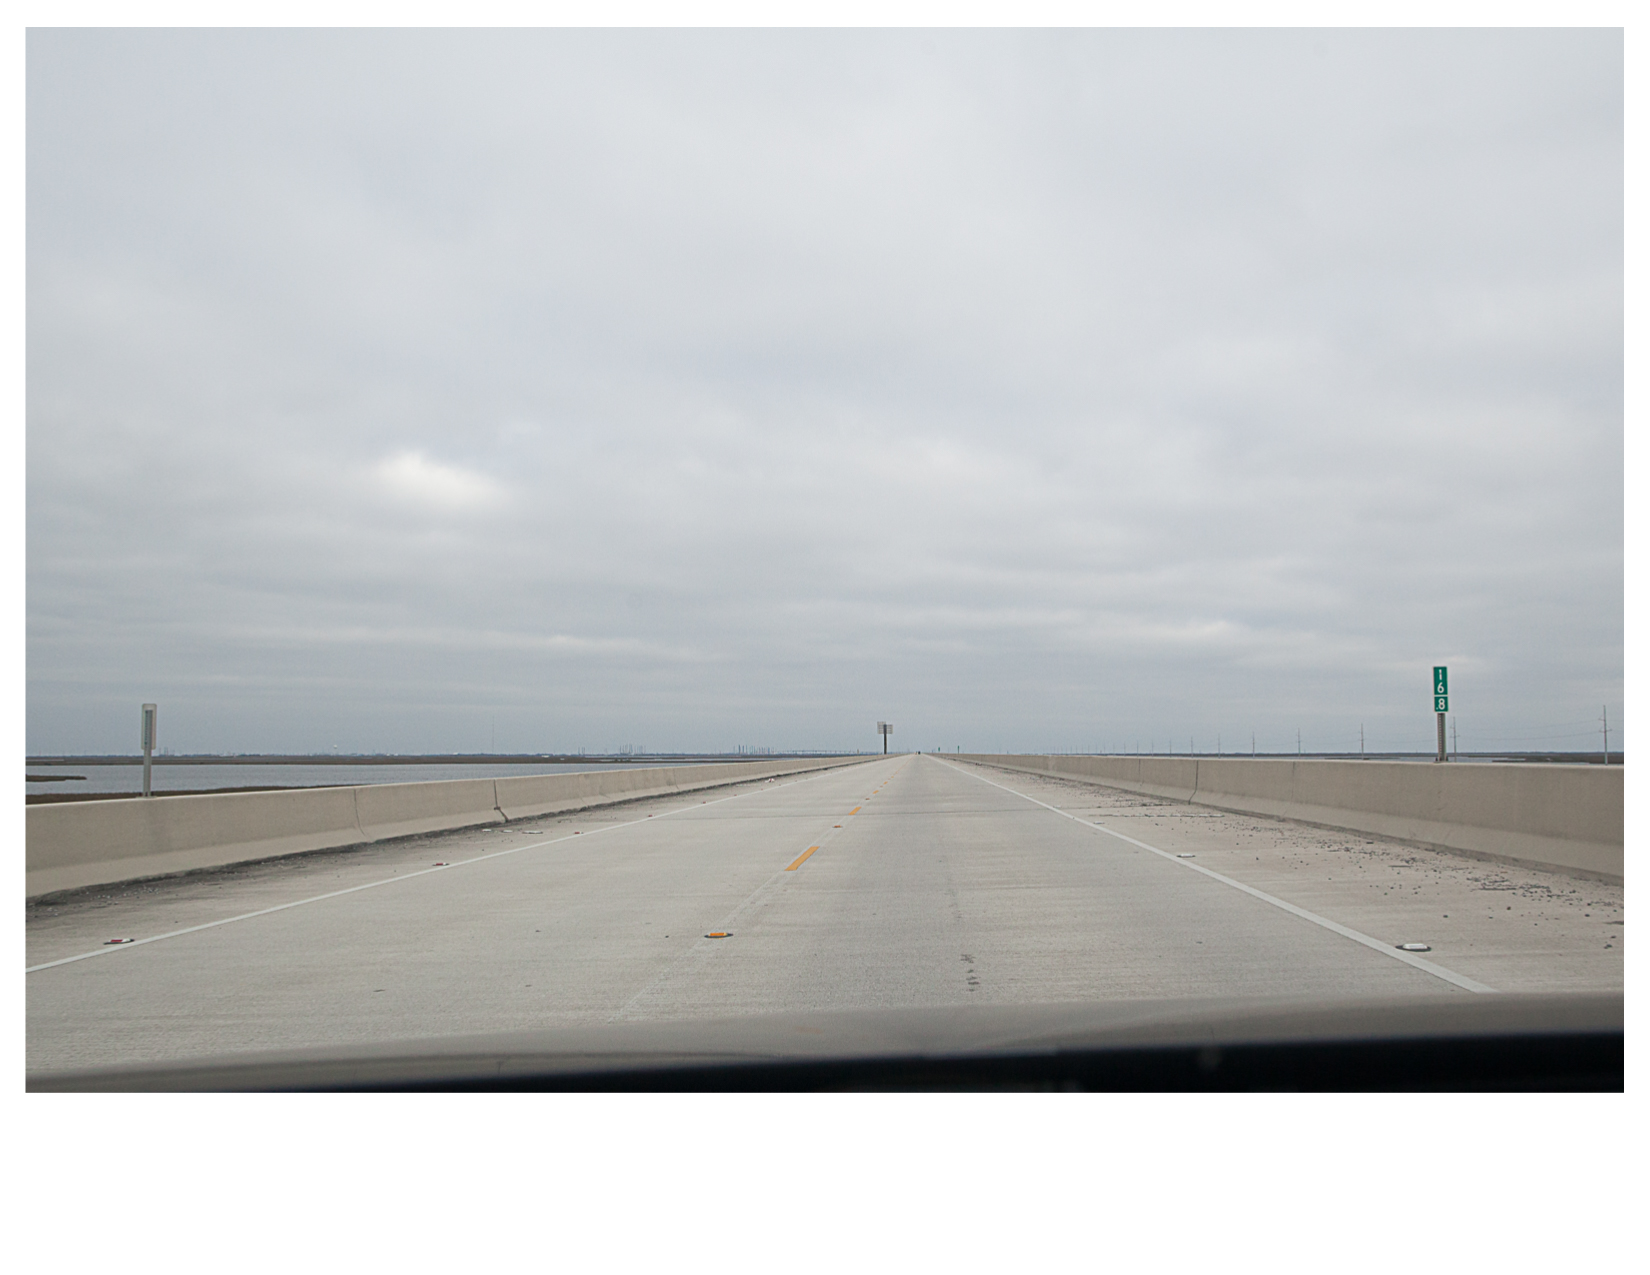 LA 1, Northbound, Outside of Grand Isle, LA